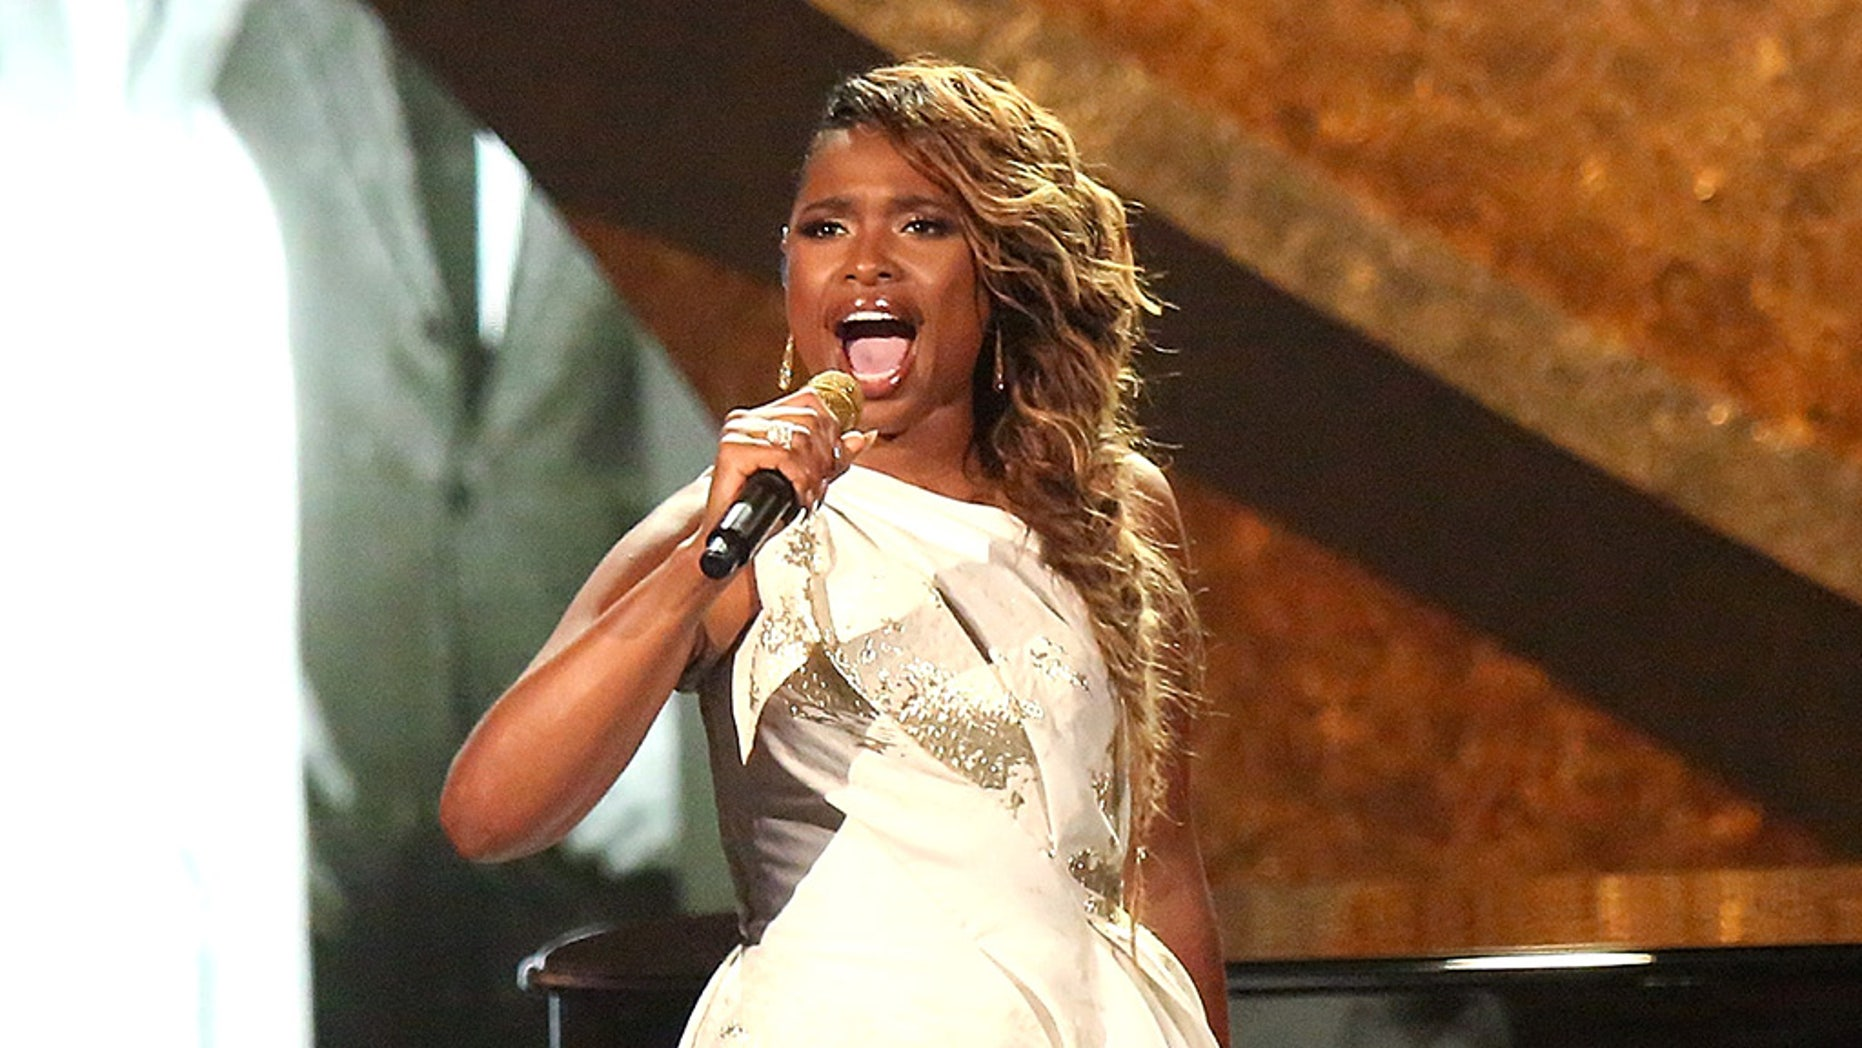 Jennifer Hudson will play Aretha Franklin in a movie about the late singer.